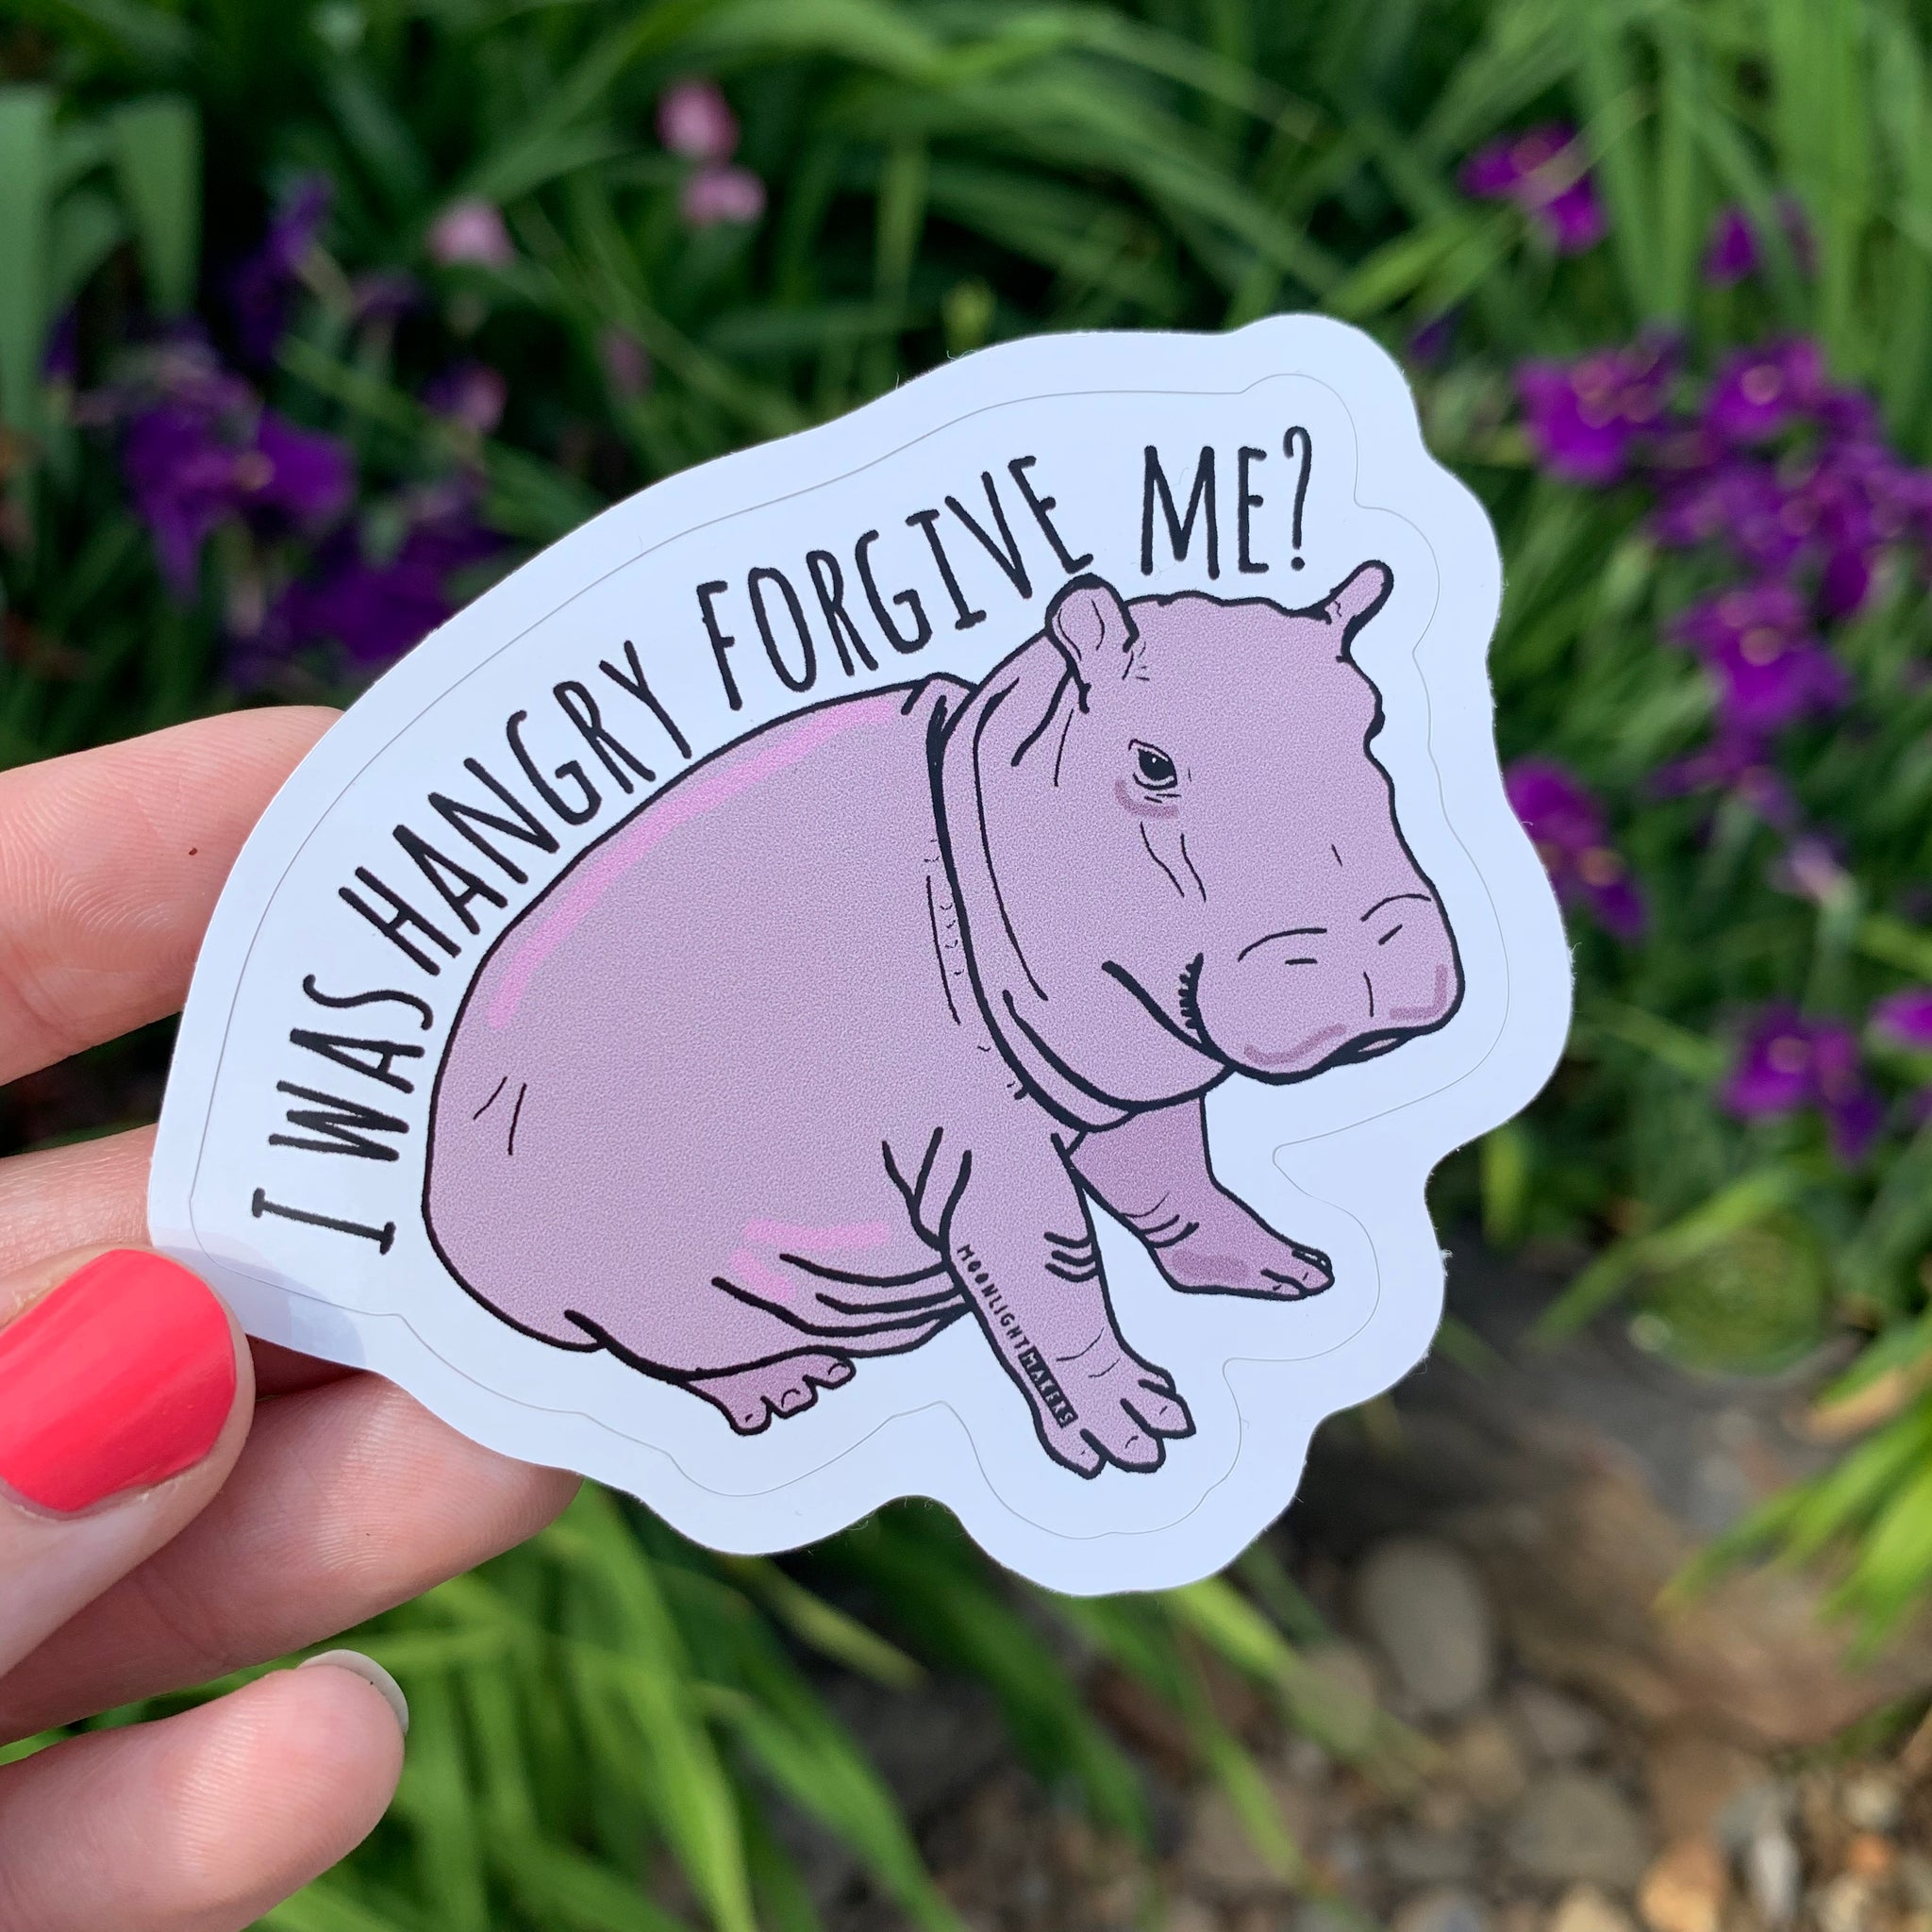 I Was Hangry Forgive Me? - Die Cut Sticker - MoonlightMakers